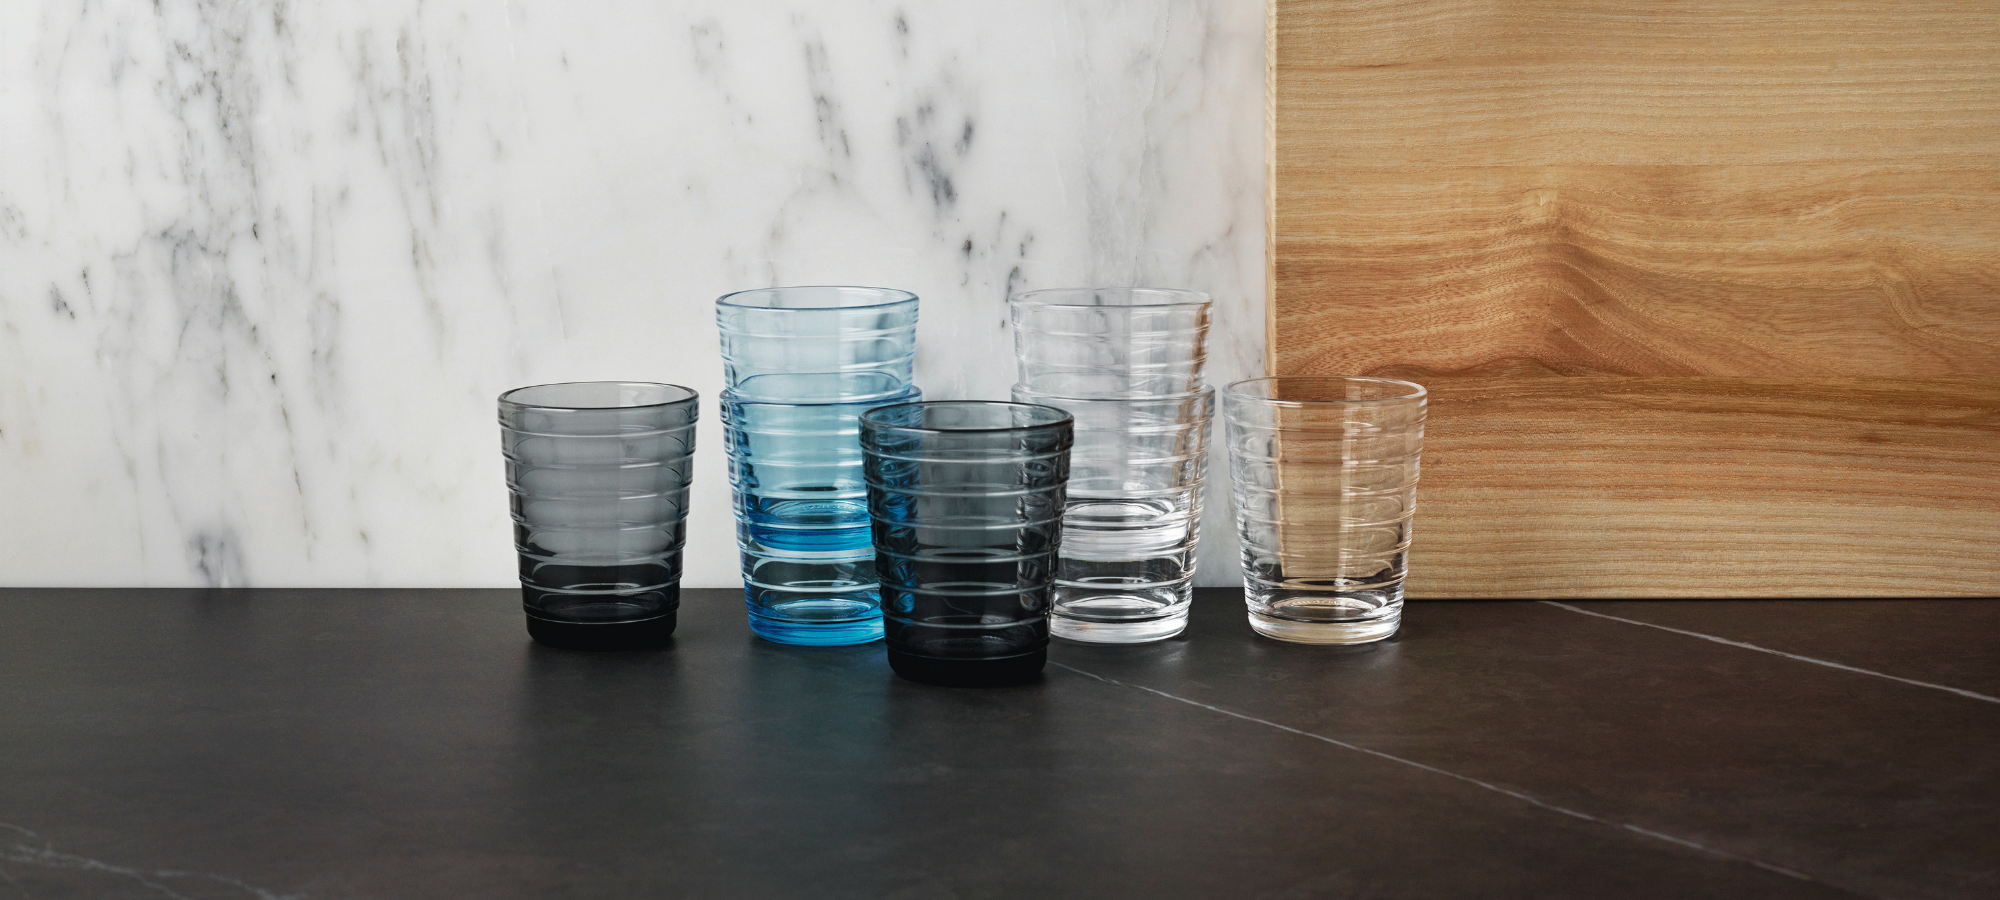 aino aalto glassware valentines day gift ideas